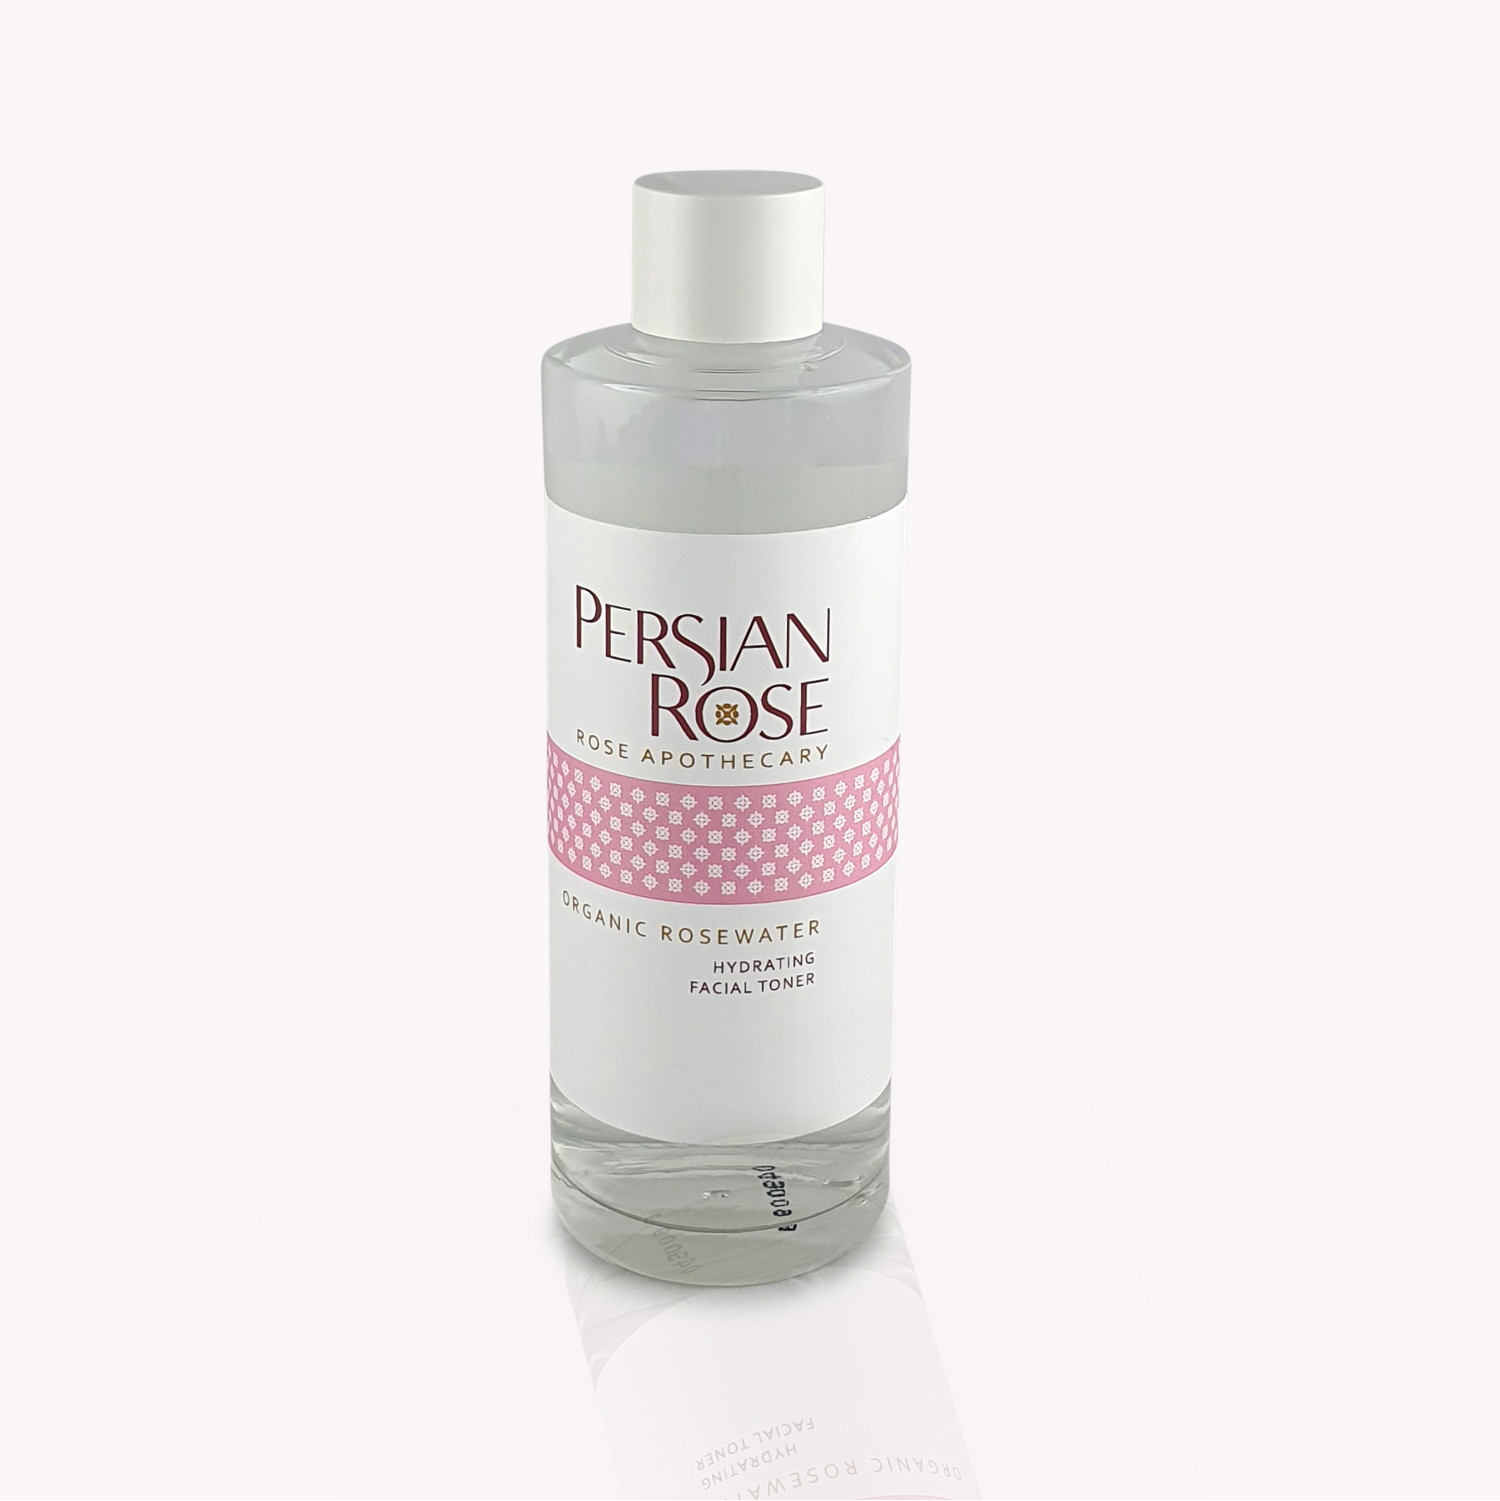 Organic Rosewater Hydrating Facial Toner Bottle